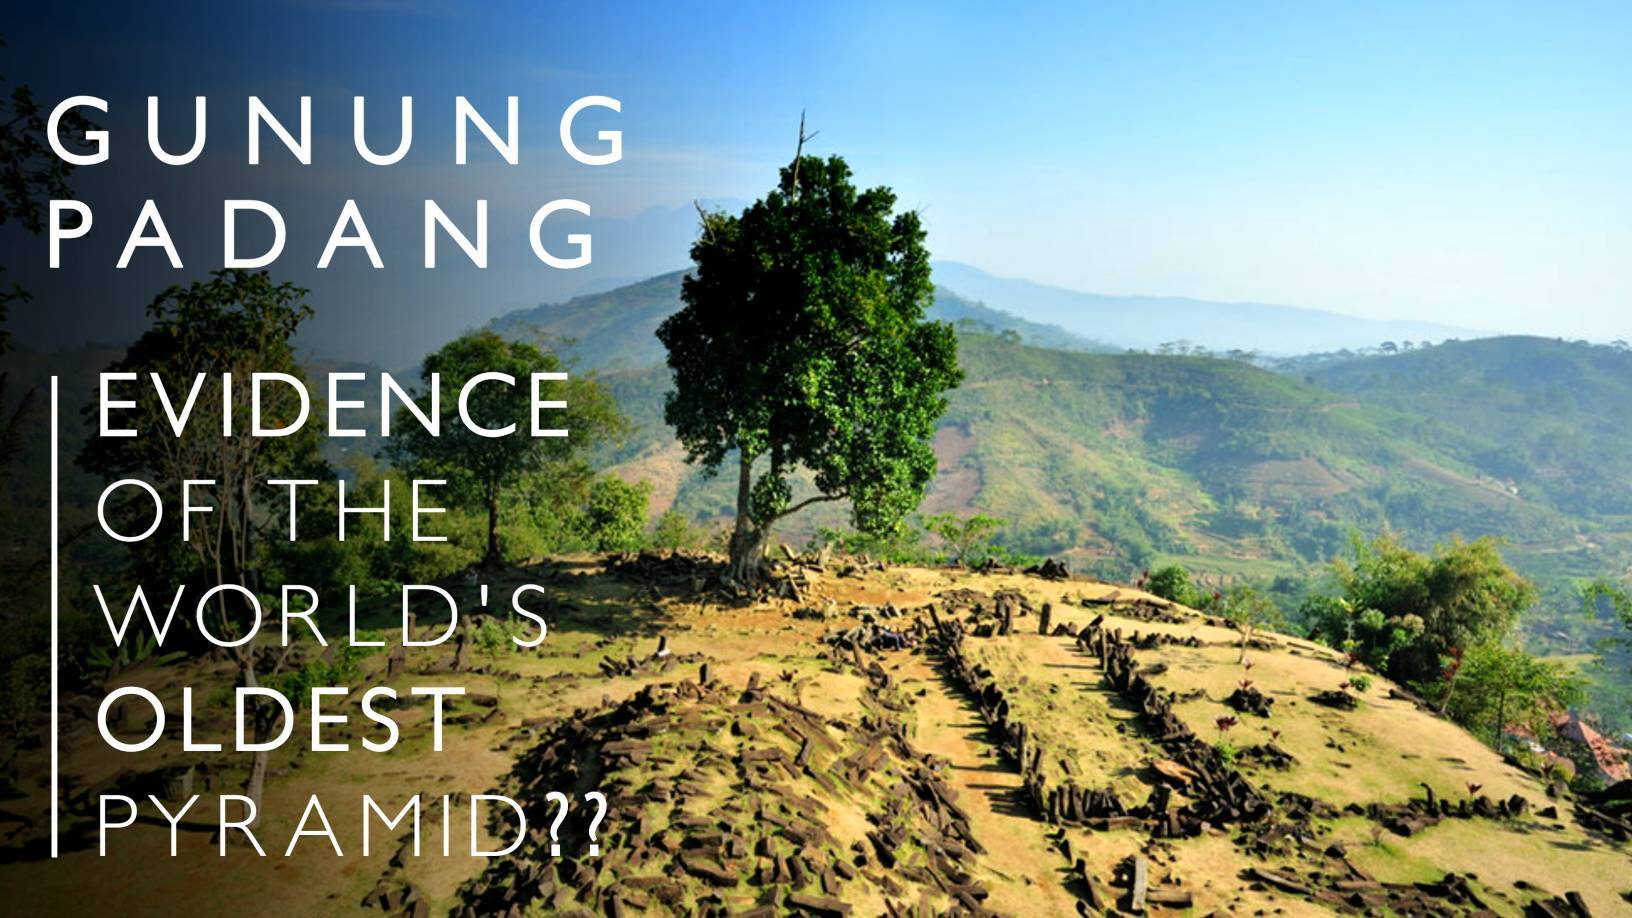 Is the world's oldest pyramid hidden in Mount Padang? 4